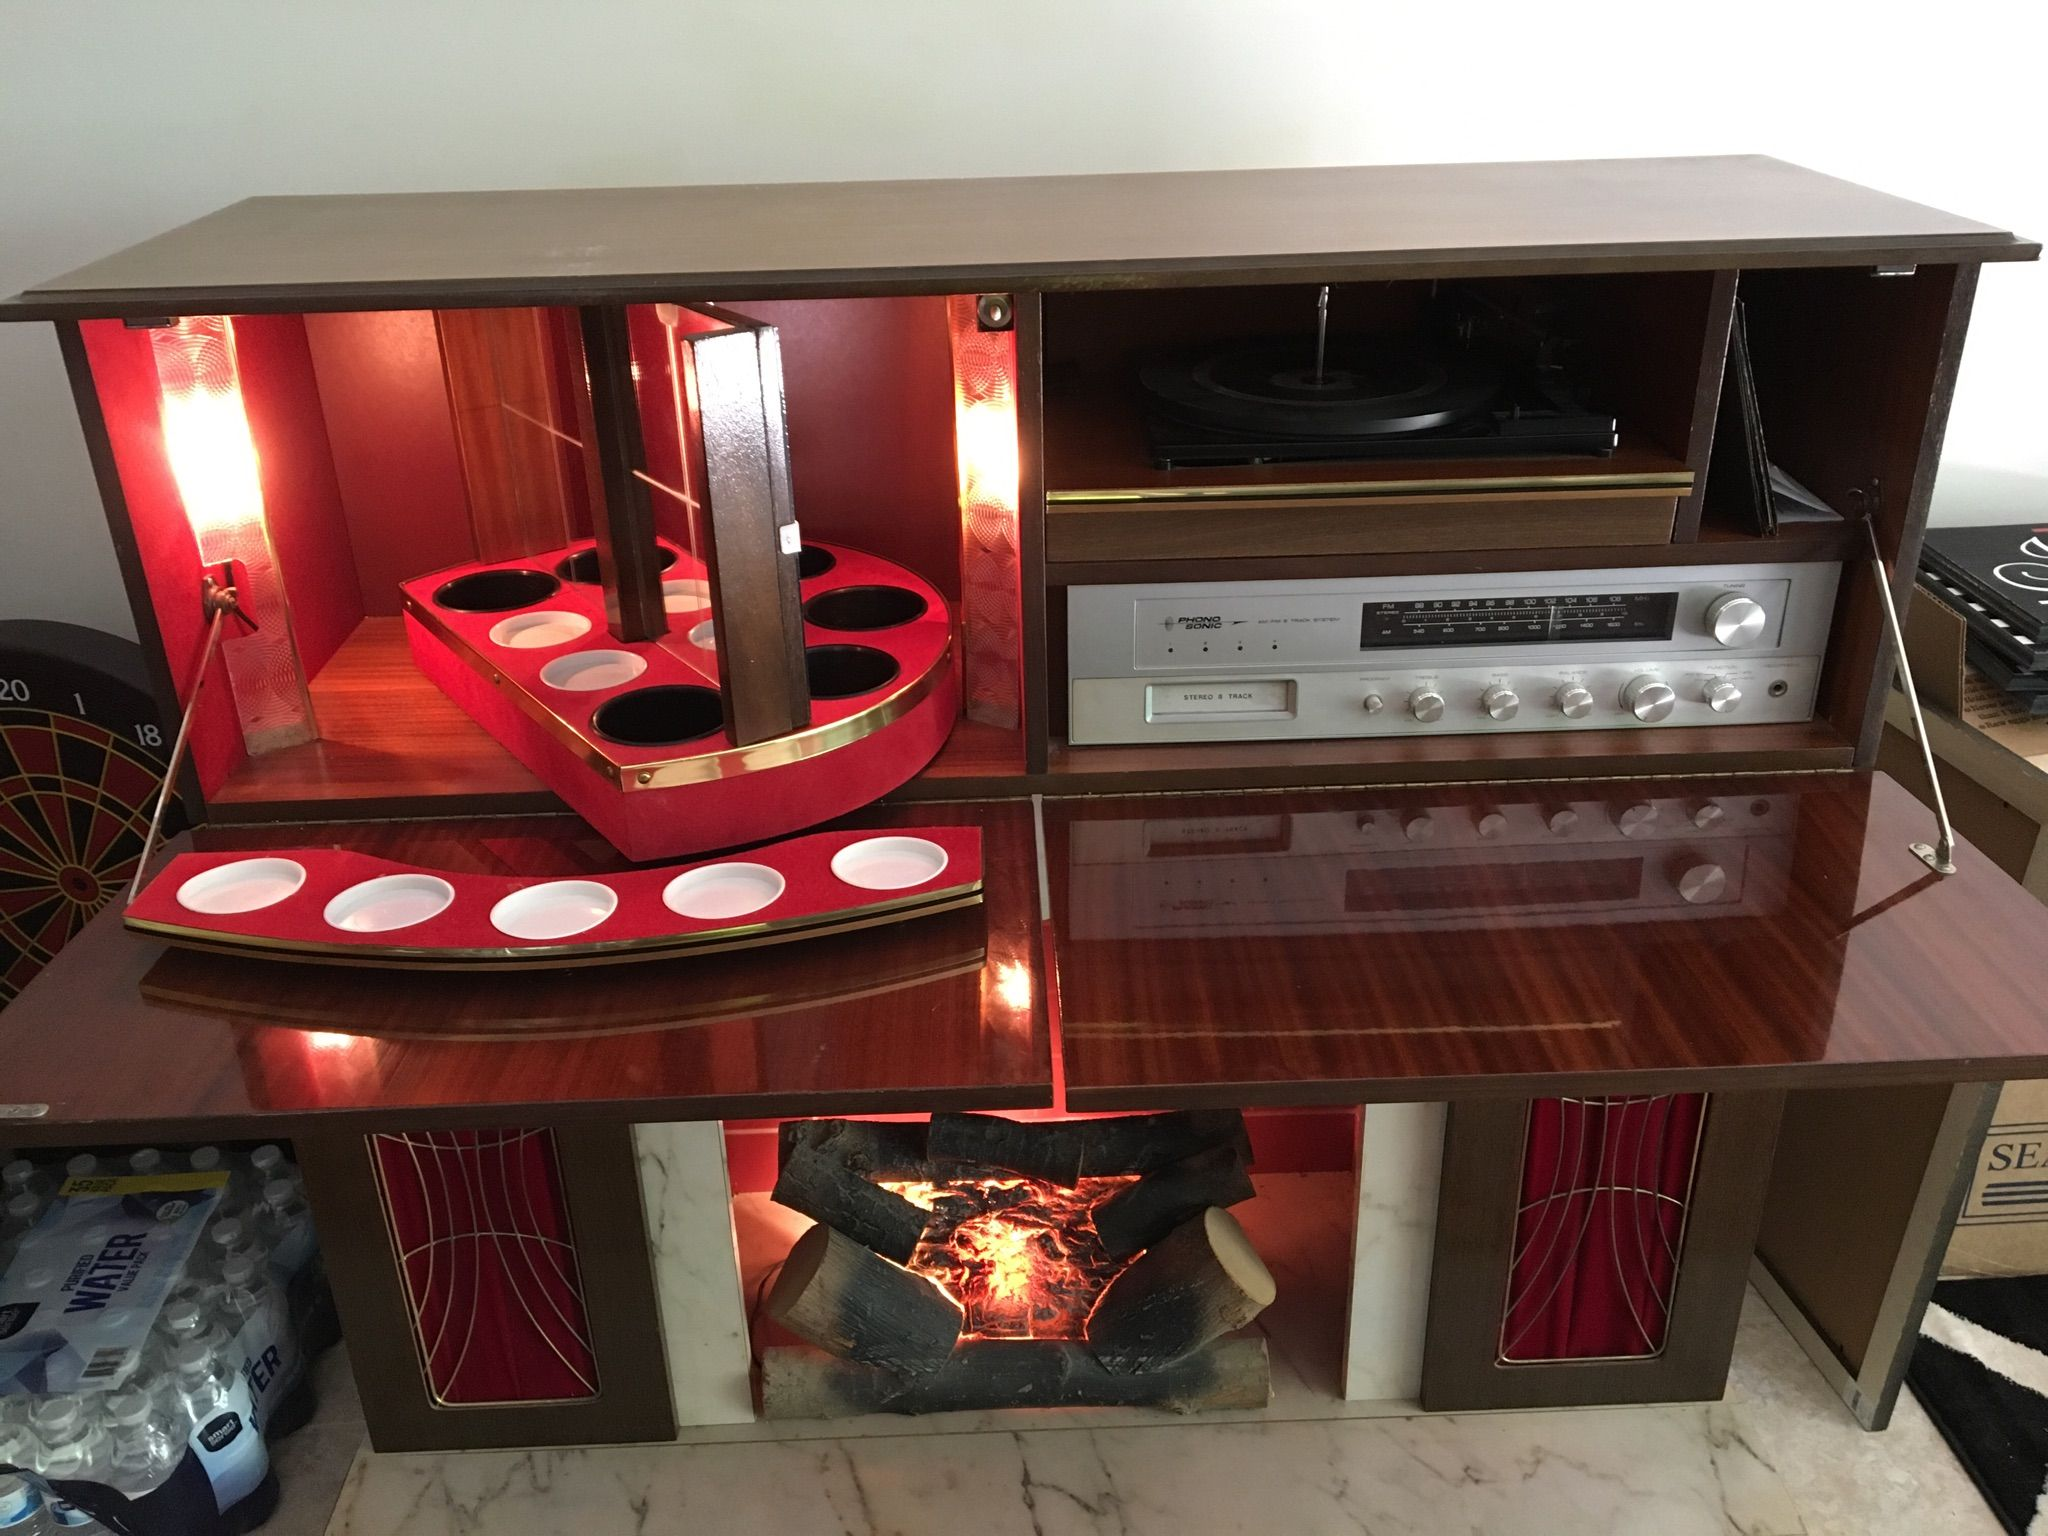 The Phono Sonic Liquor Cabinet Stereo With Fireplace It